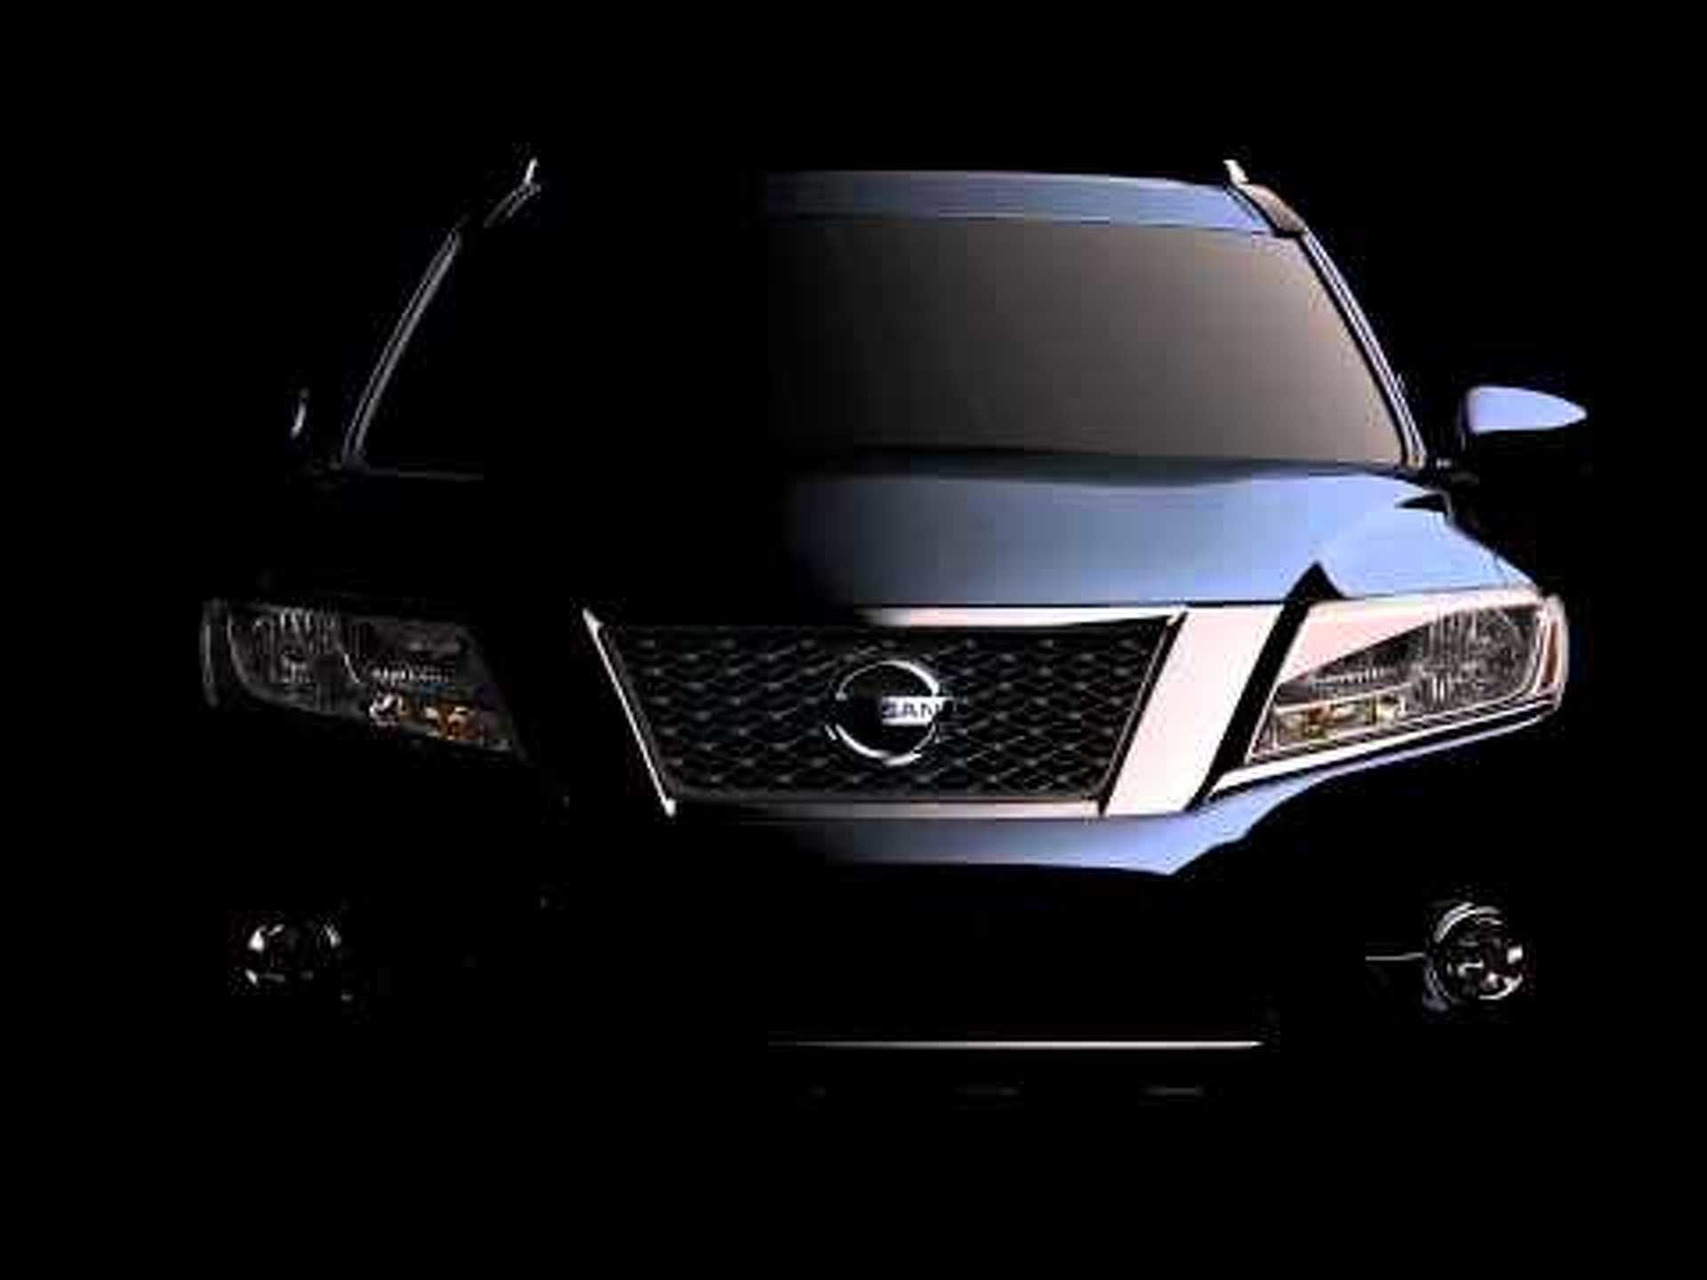 2012 Nissan Pathfinder Concept Front View Teased